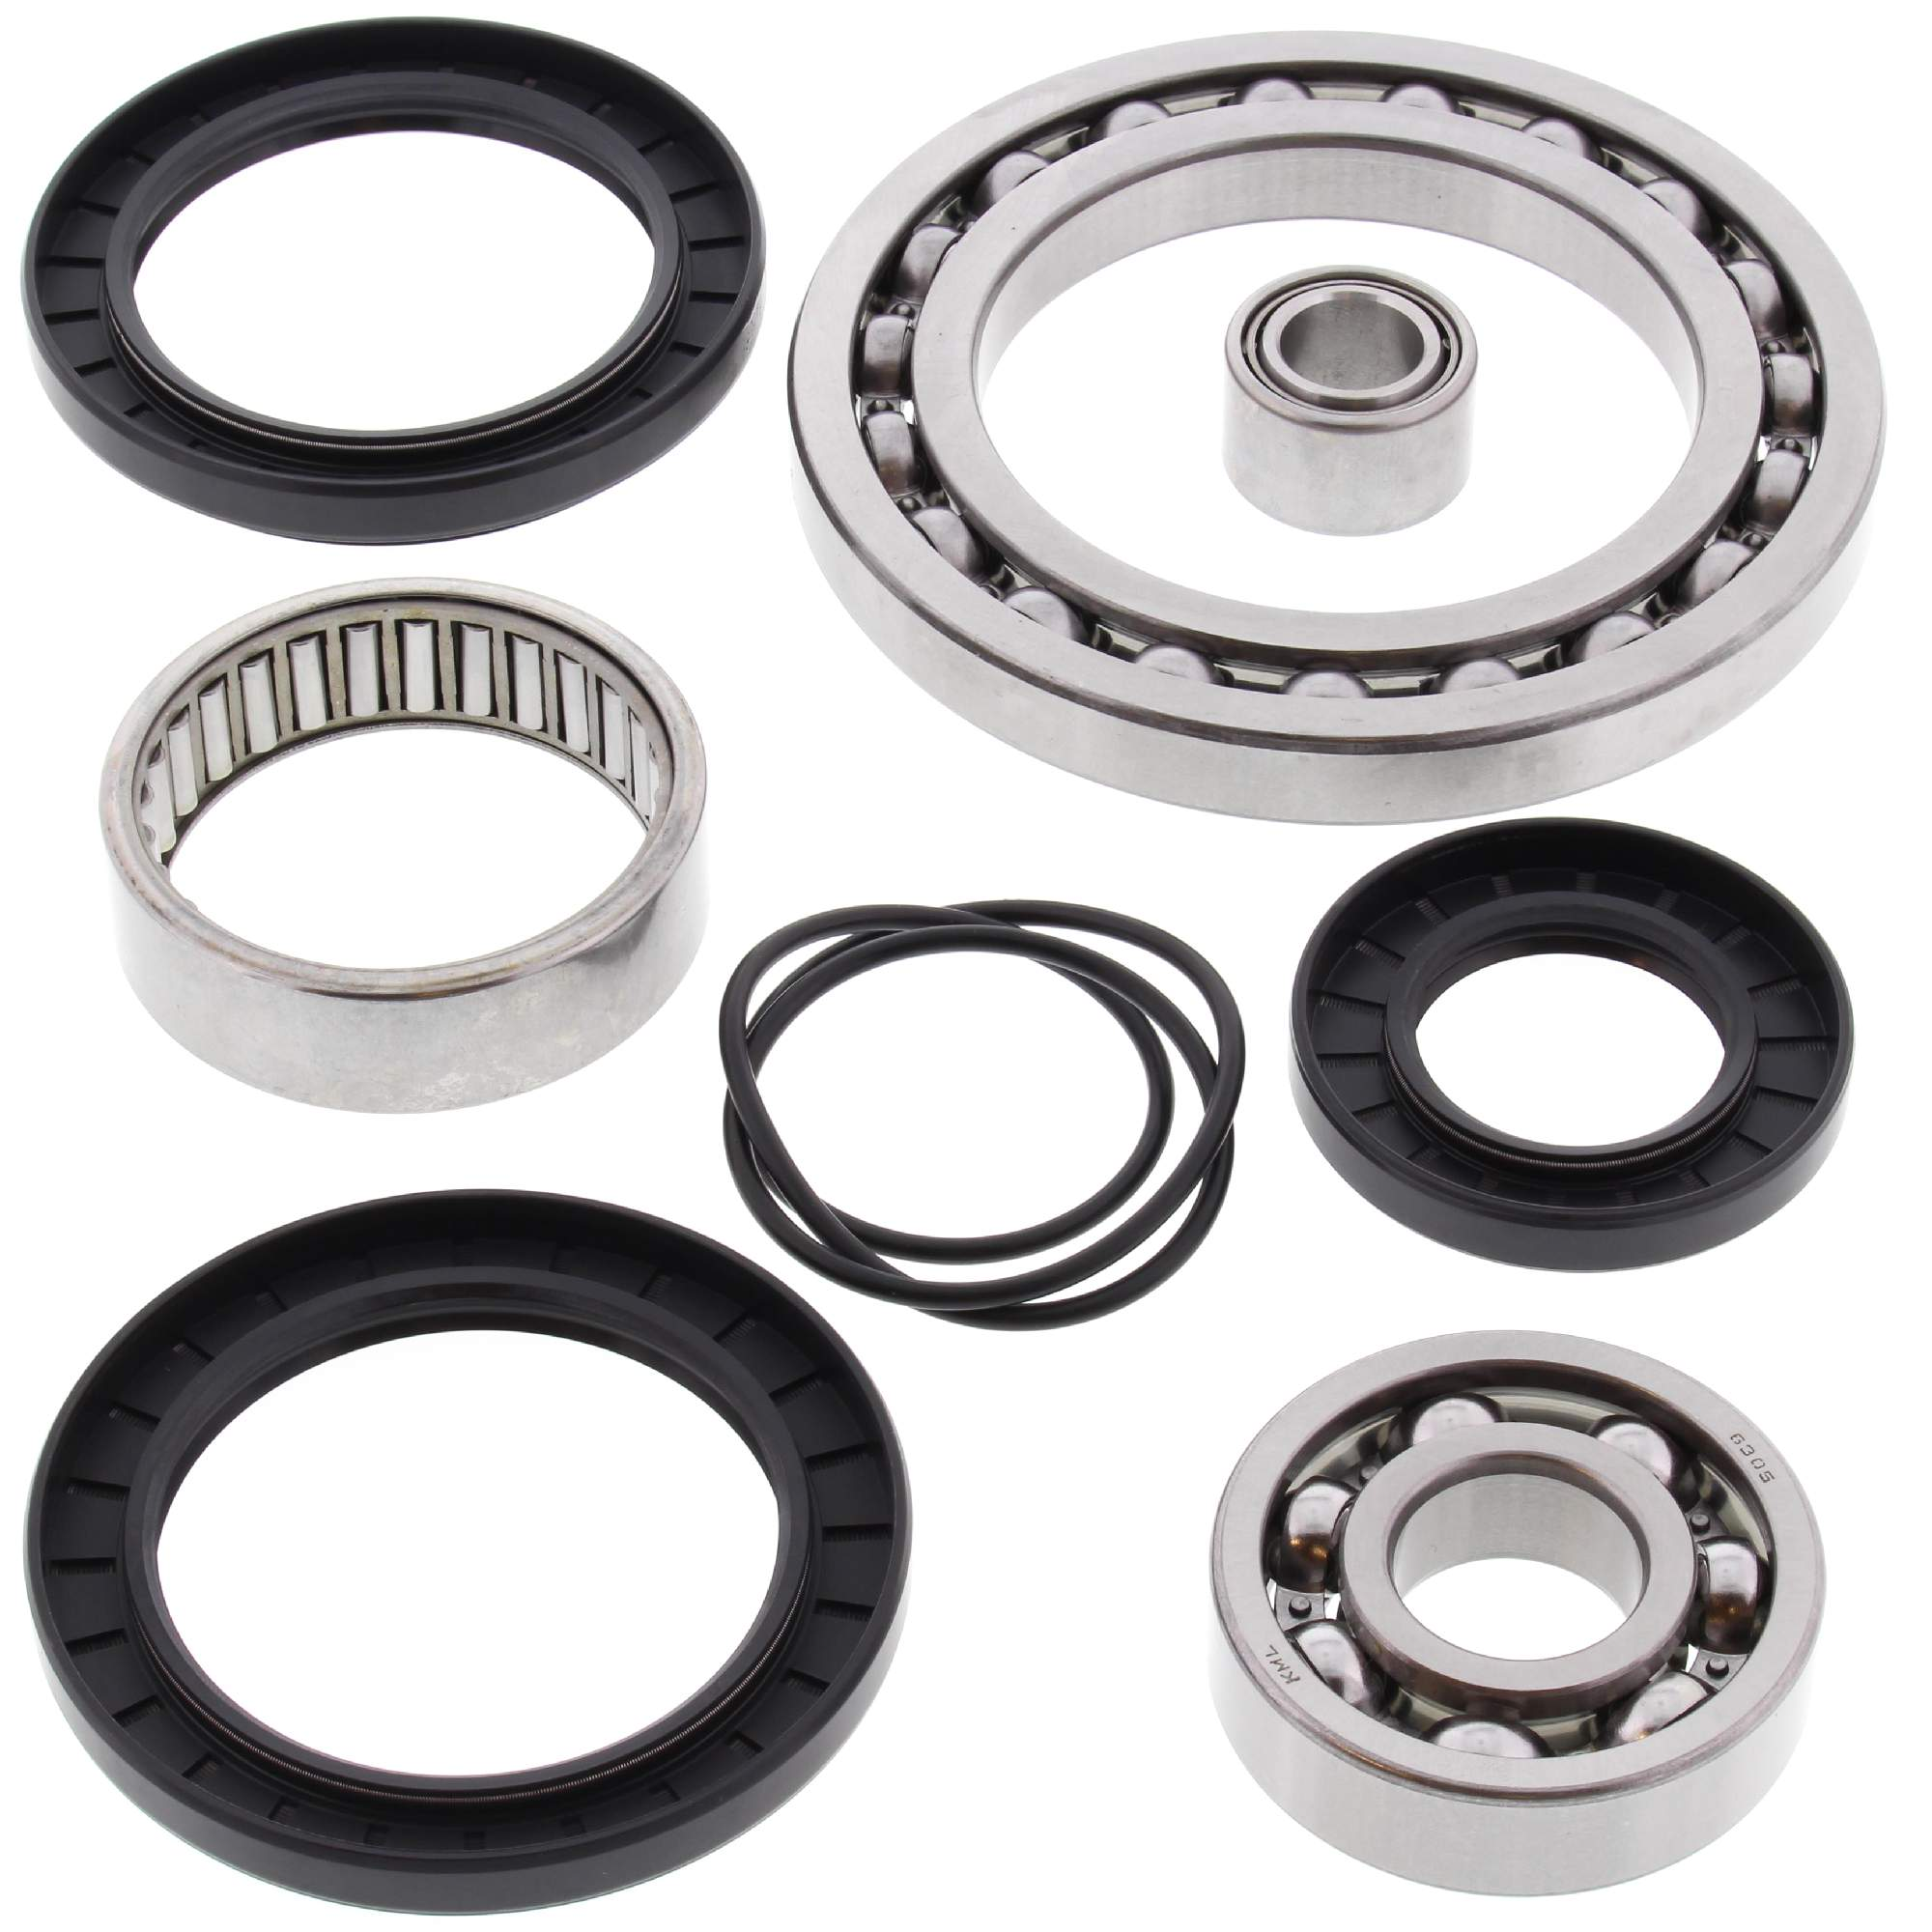 Differential Bearing and Seal Kit For 2013 Polaris Ranger 800 Crew~All Balls